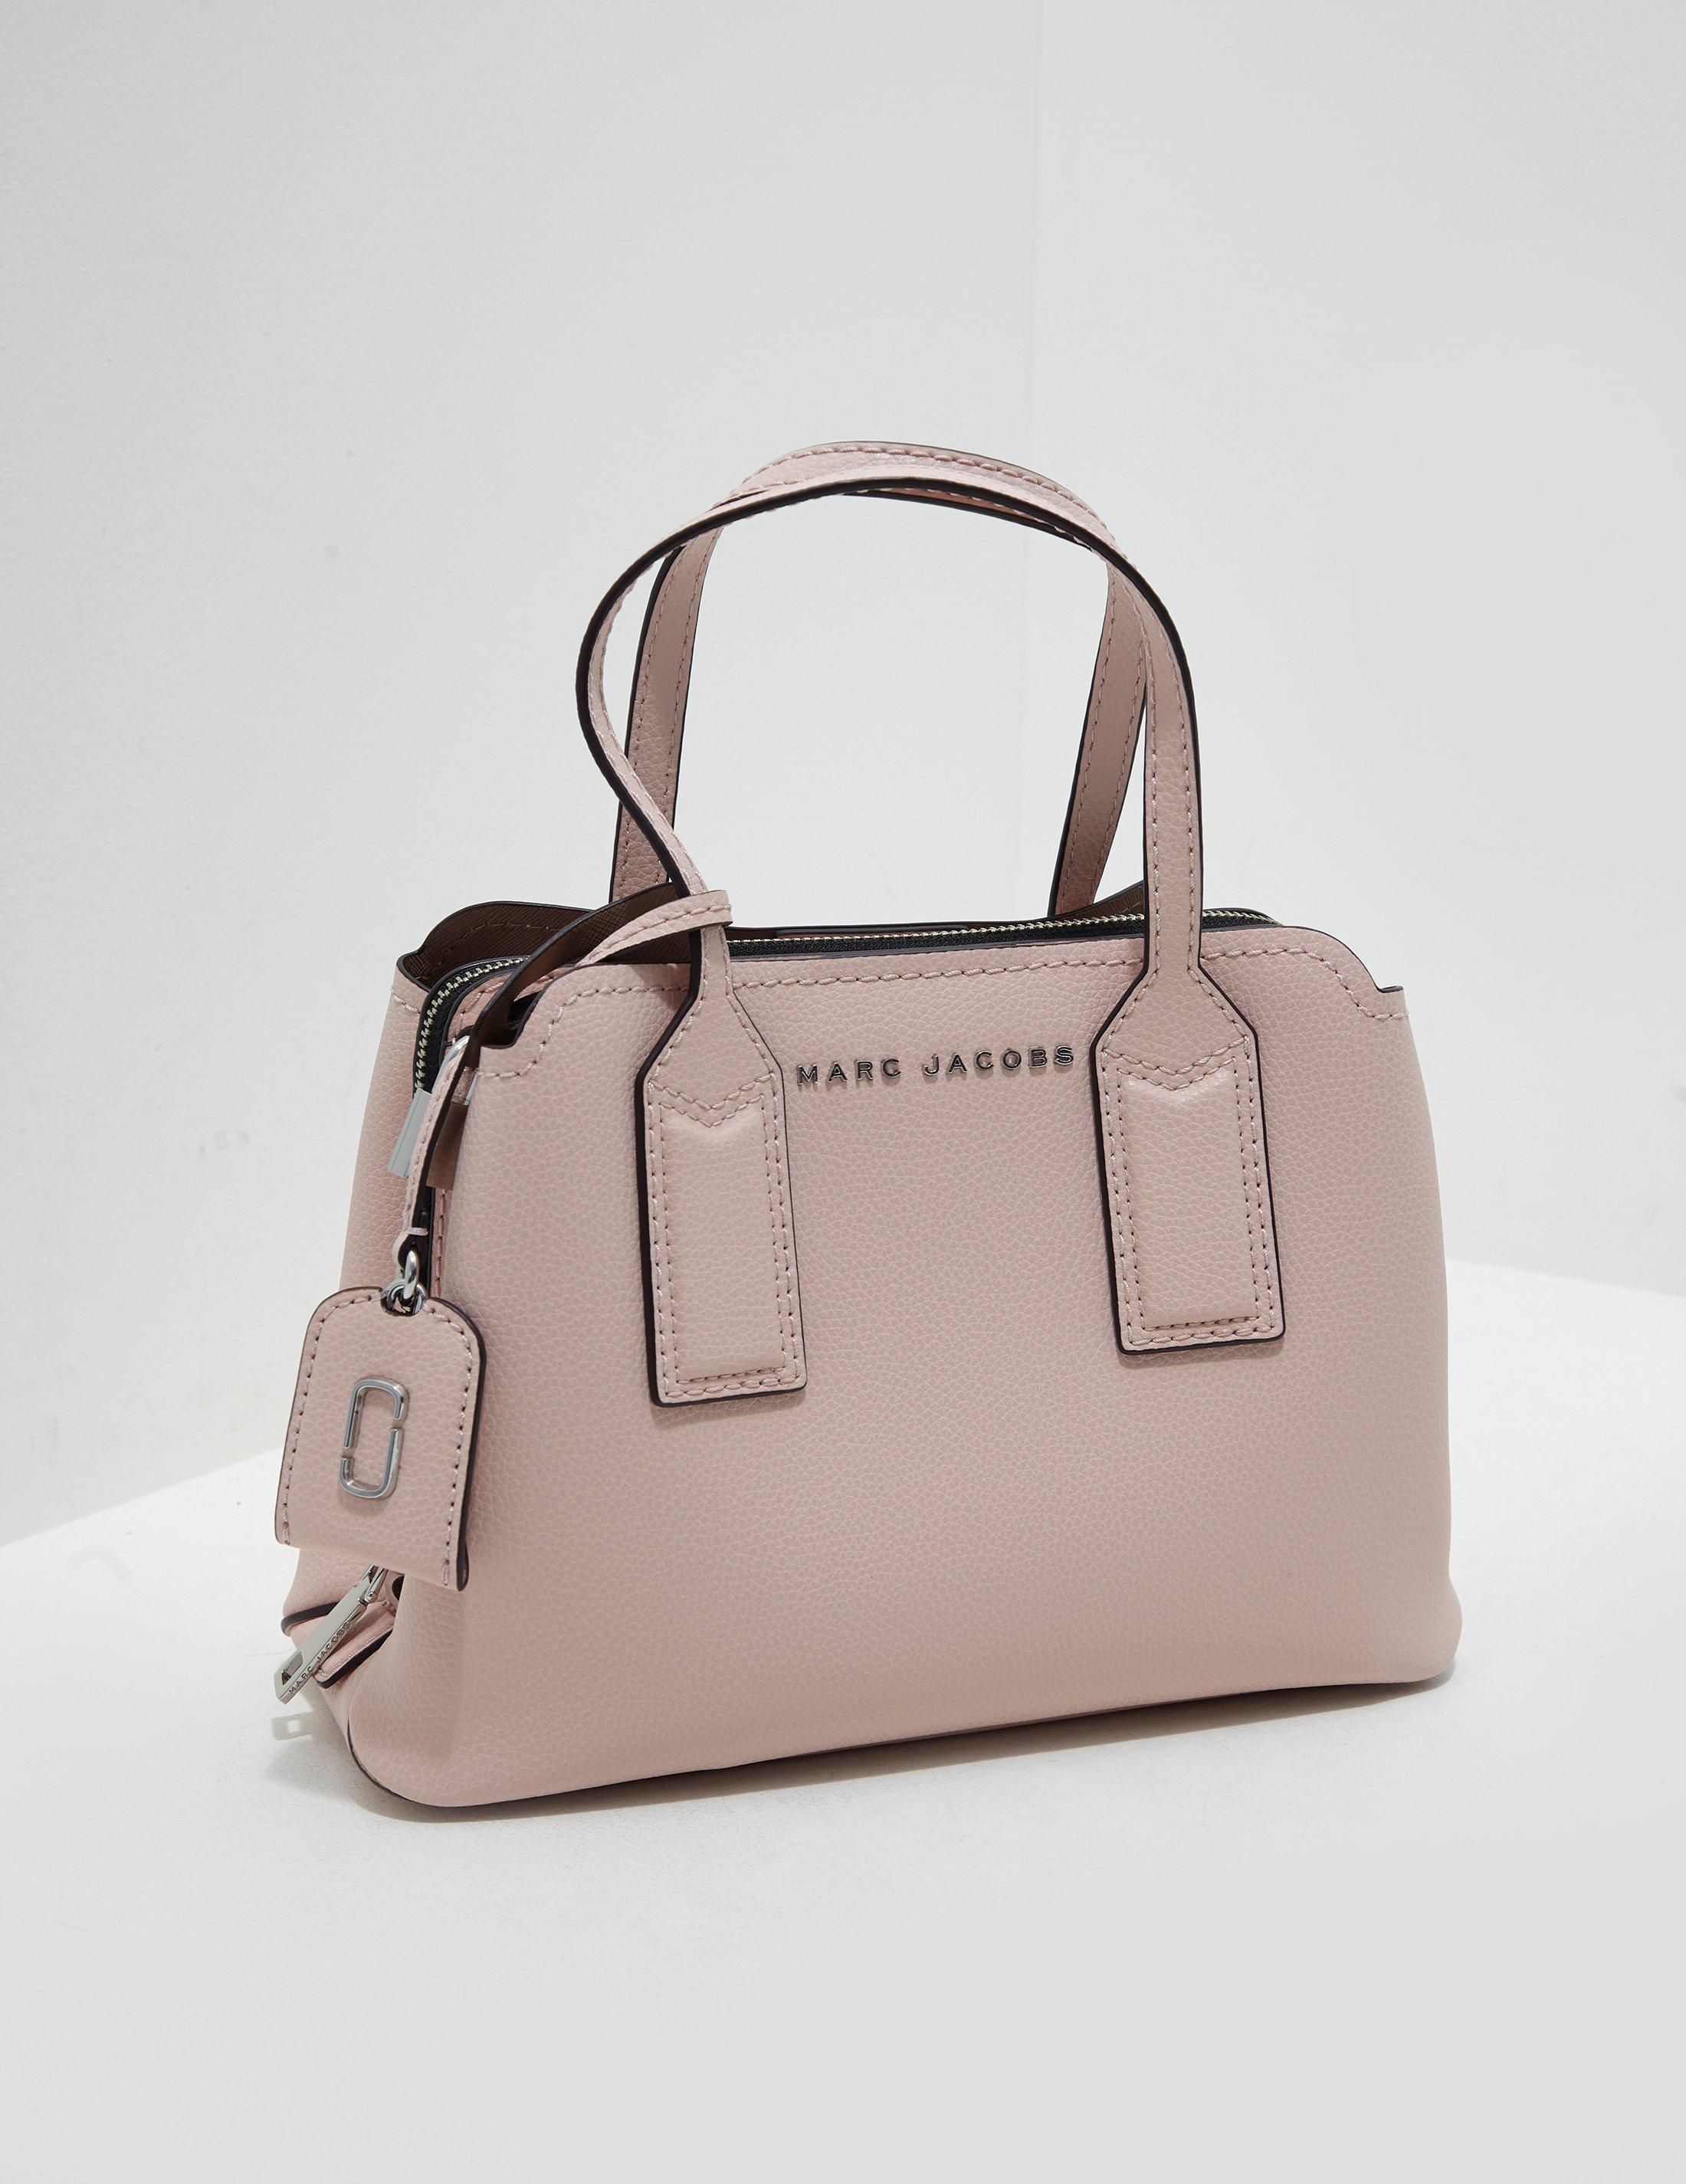 d2439c94f5f0 Marc Jacobs - The Editor Bag - Online Exclusive Pink - Lyst. View fullscreen